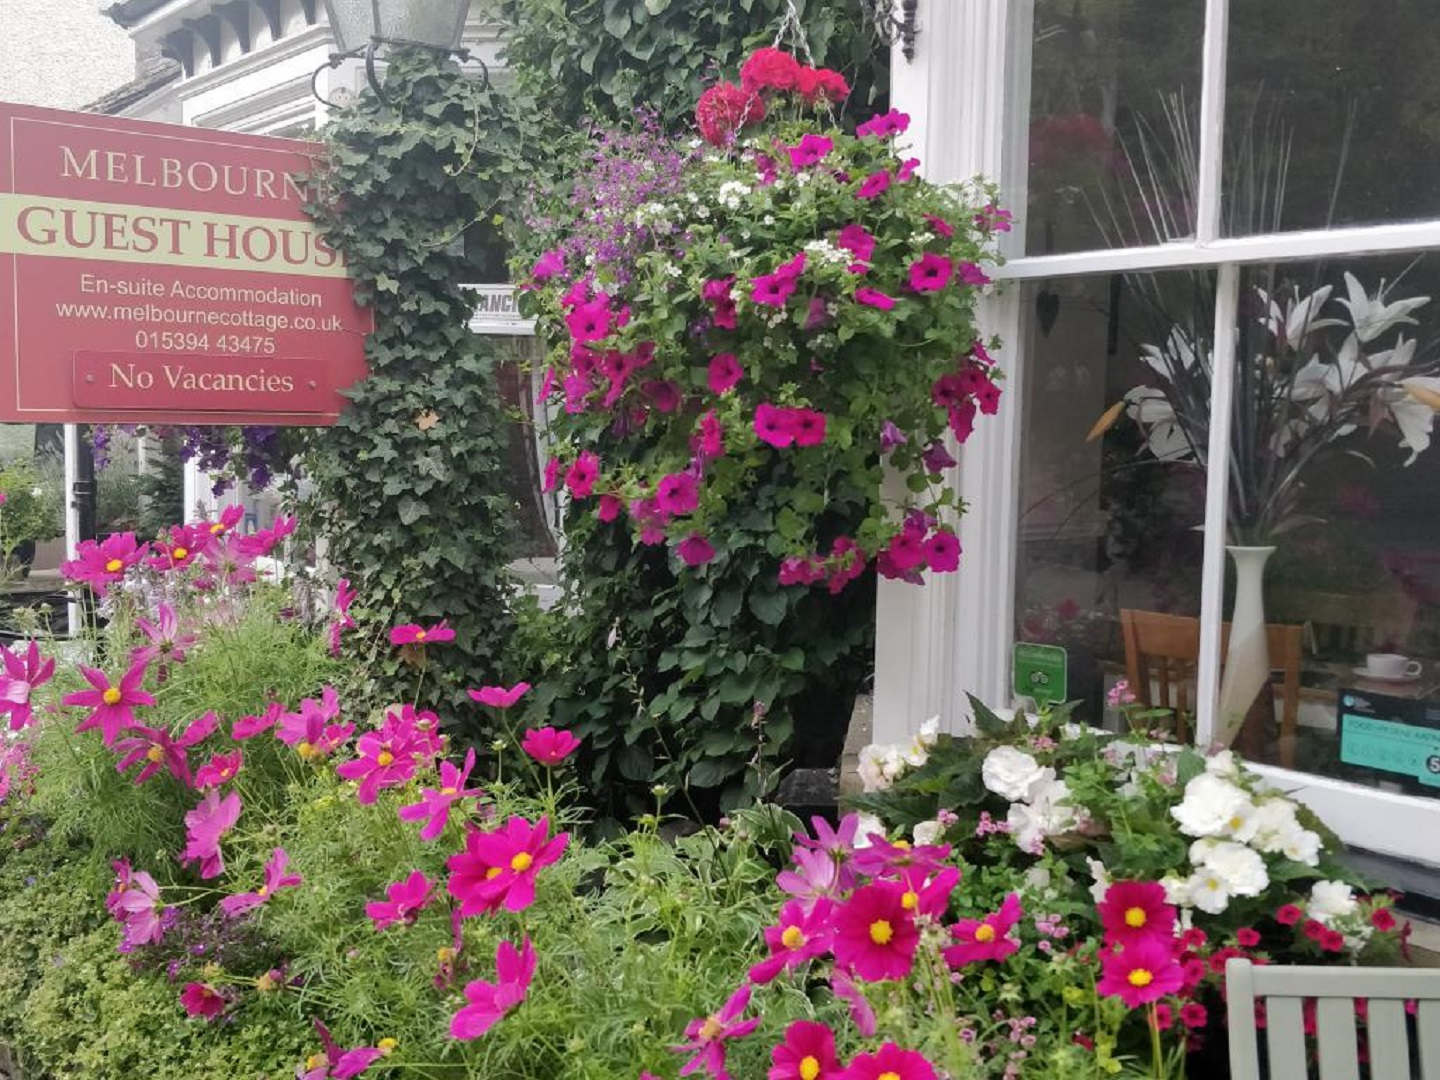 A close up of a flower garden at Melbourne Cottage Guest House.